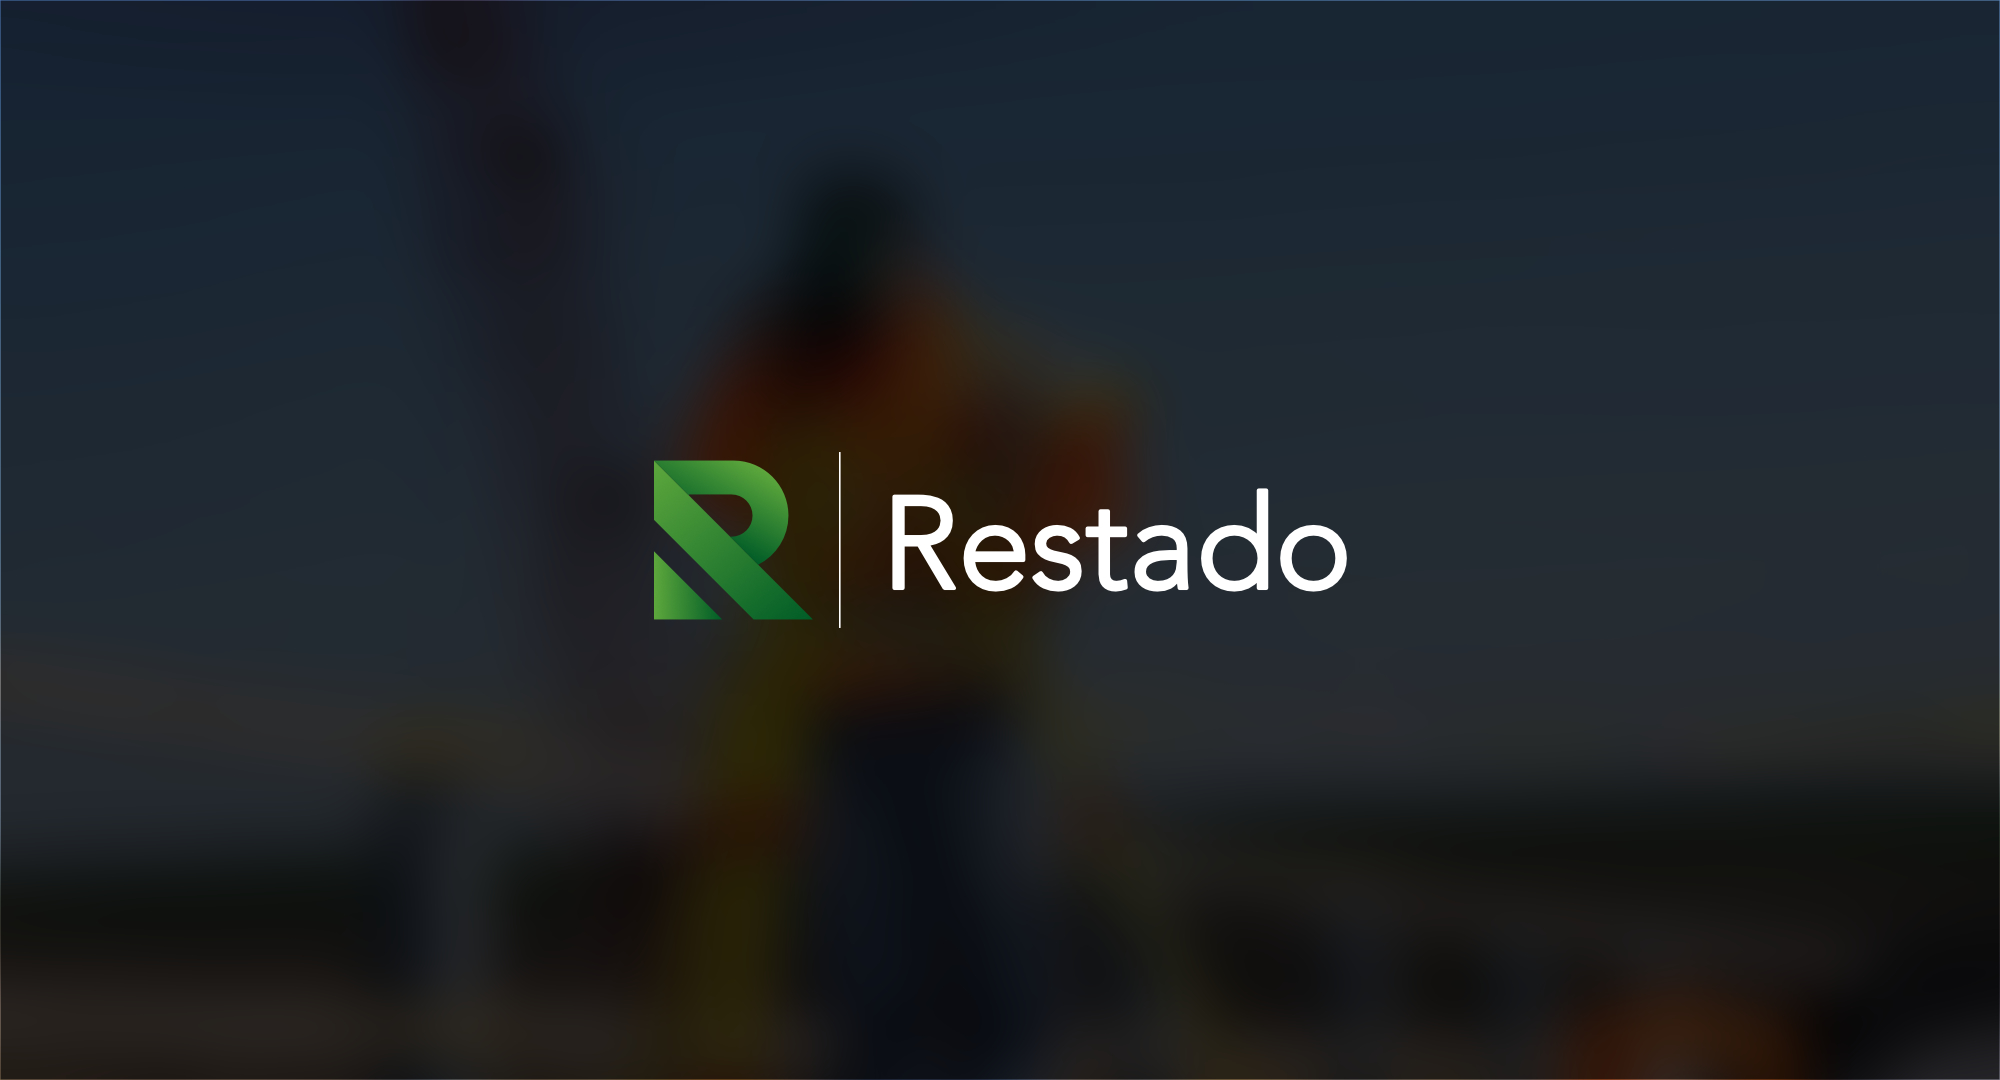 corporate branding for restado by michael maleek djibril